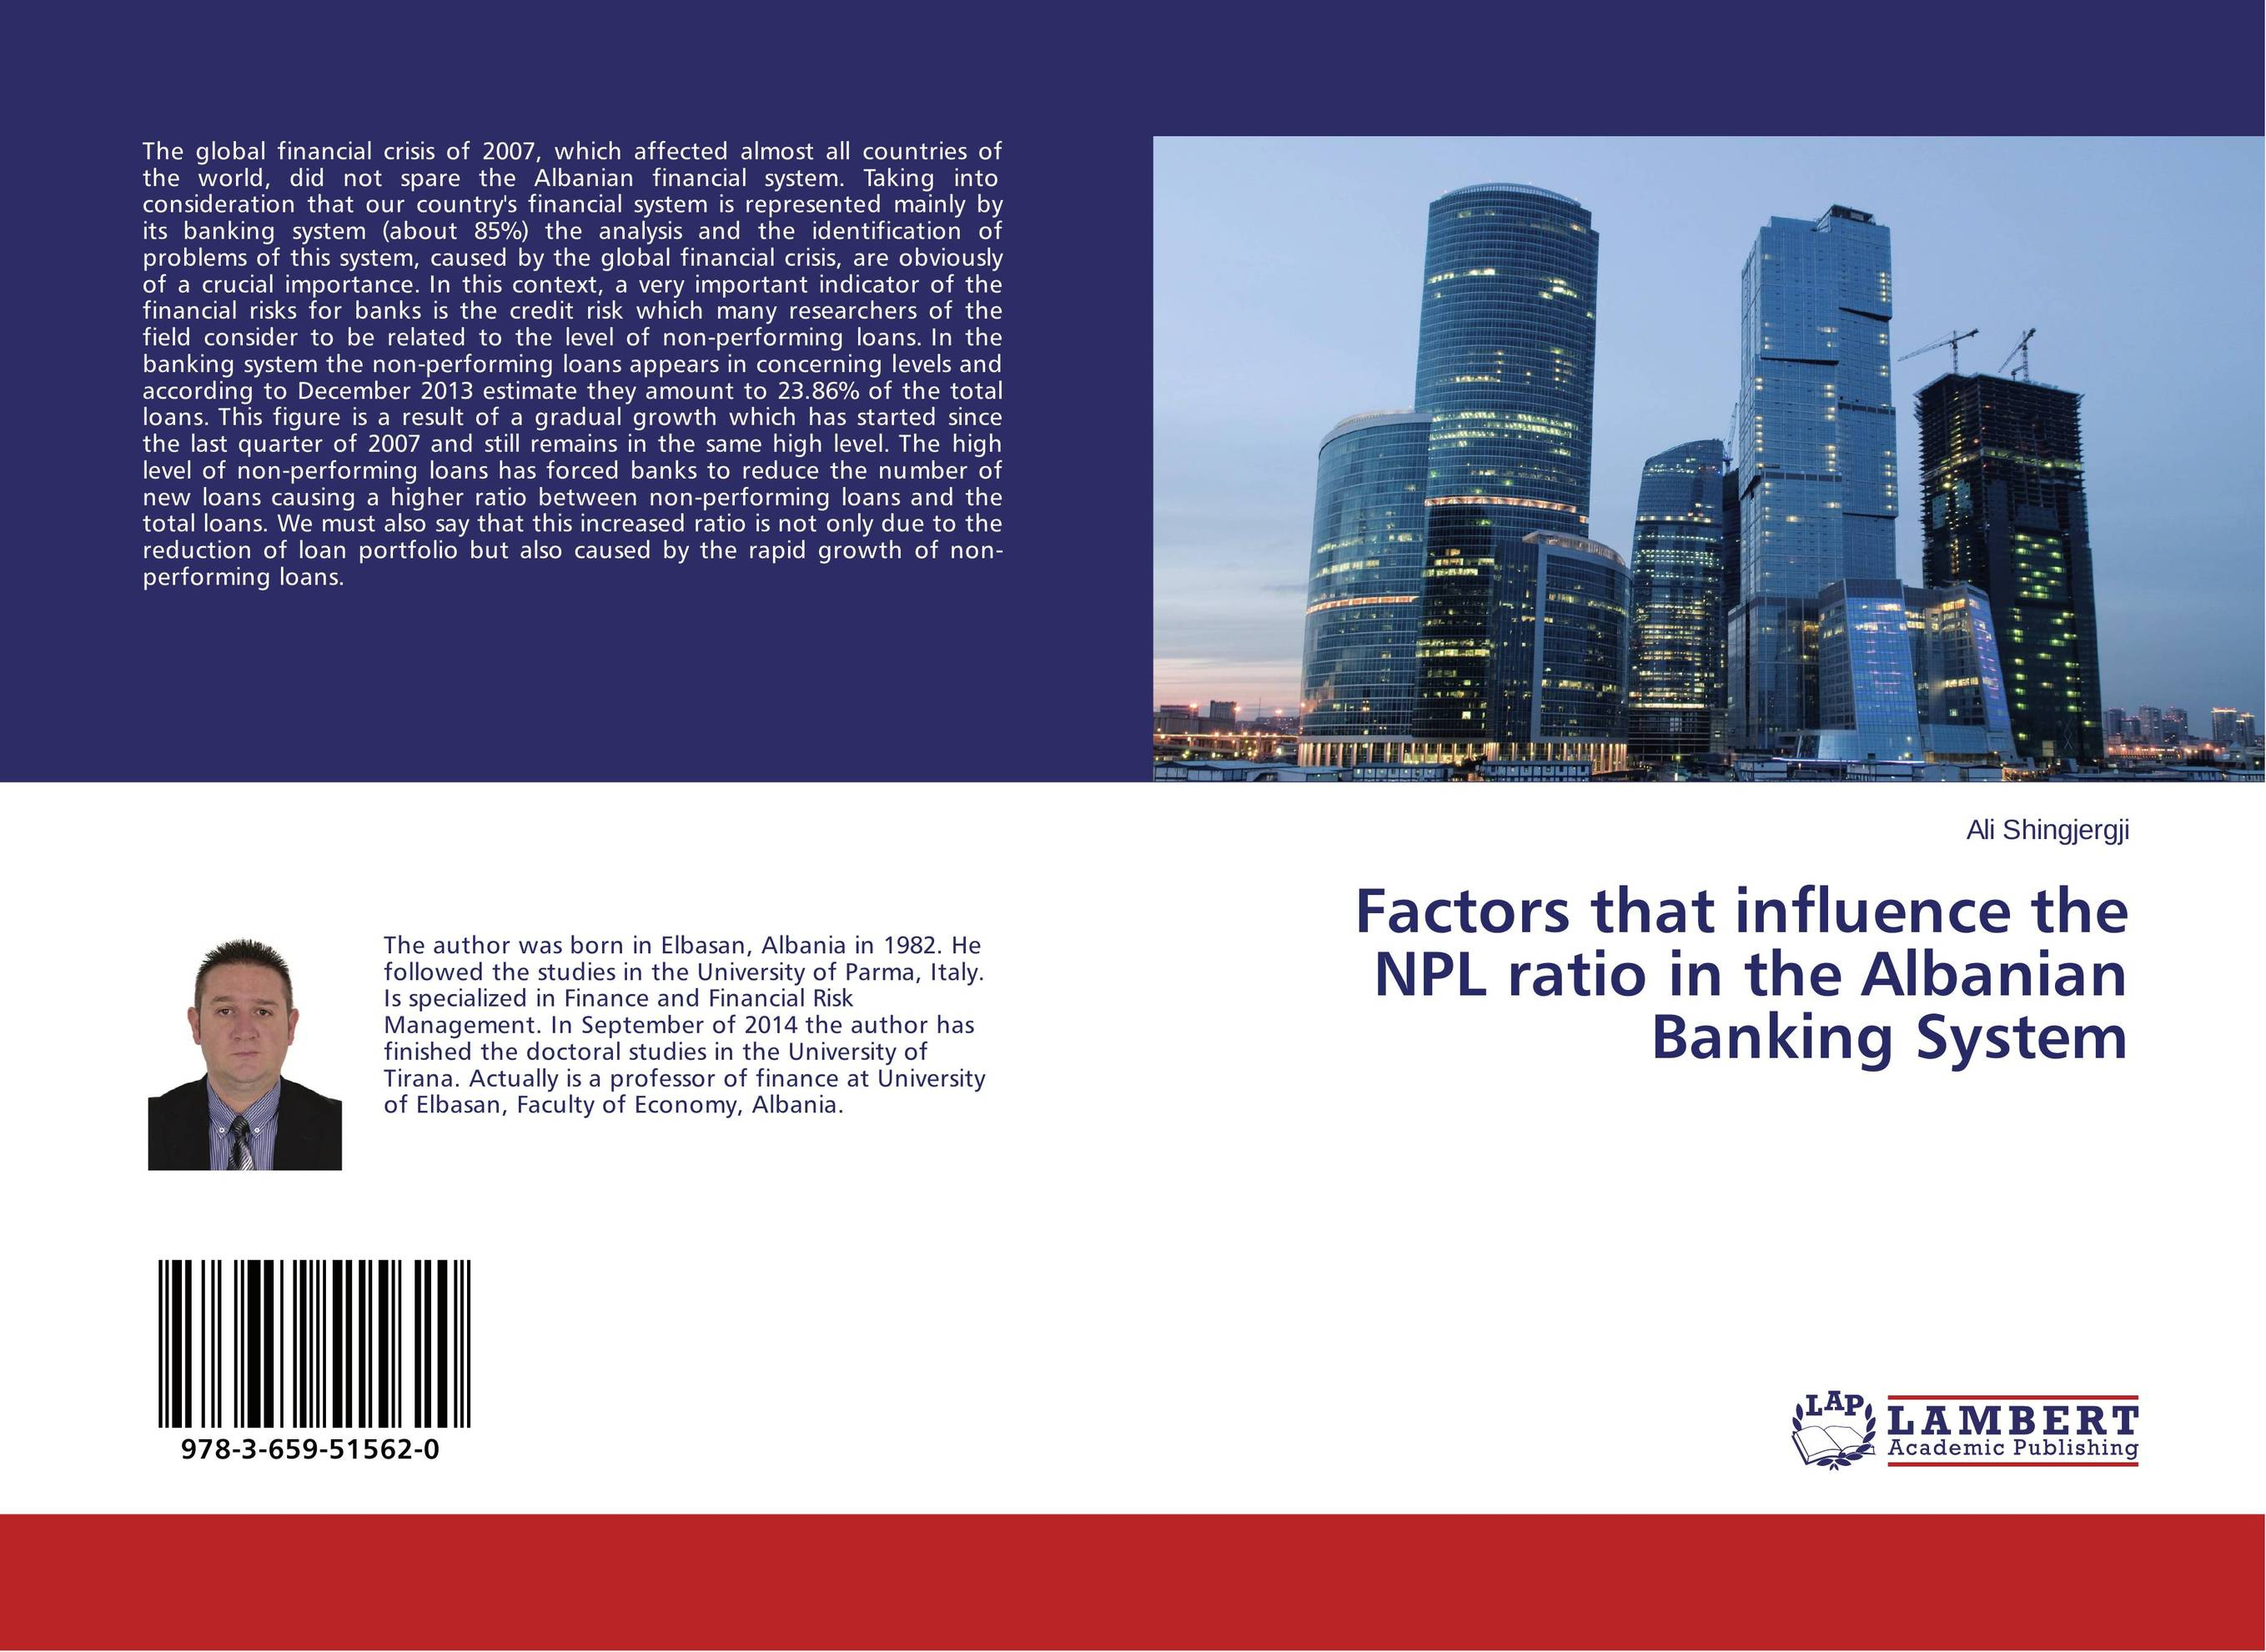 Factors that influence the NPL ratio in the Albanian Banking System banknotes of the world 2007 банкноты стран мира 2007 выпуск 7